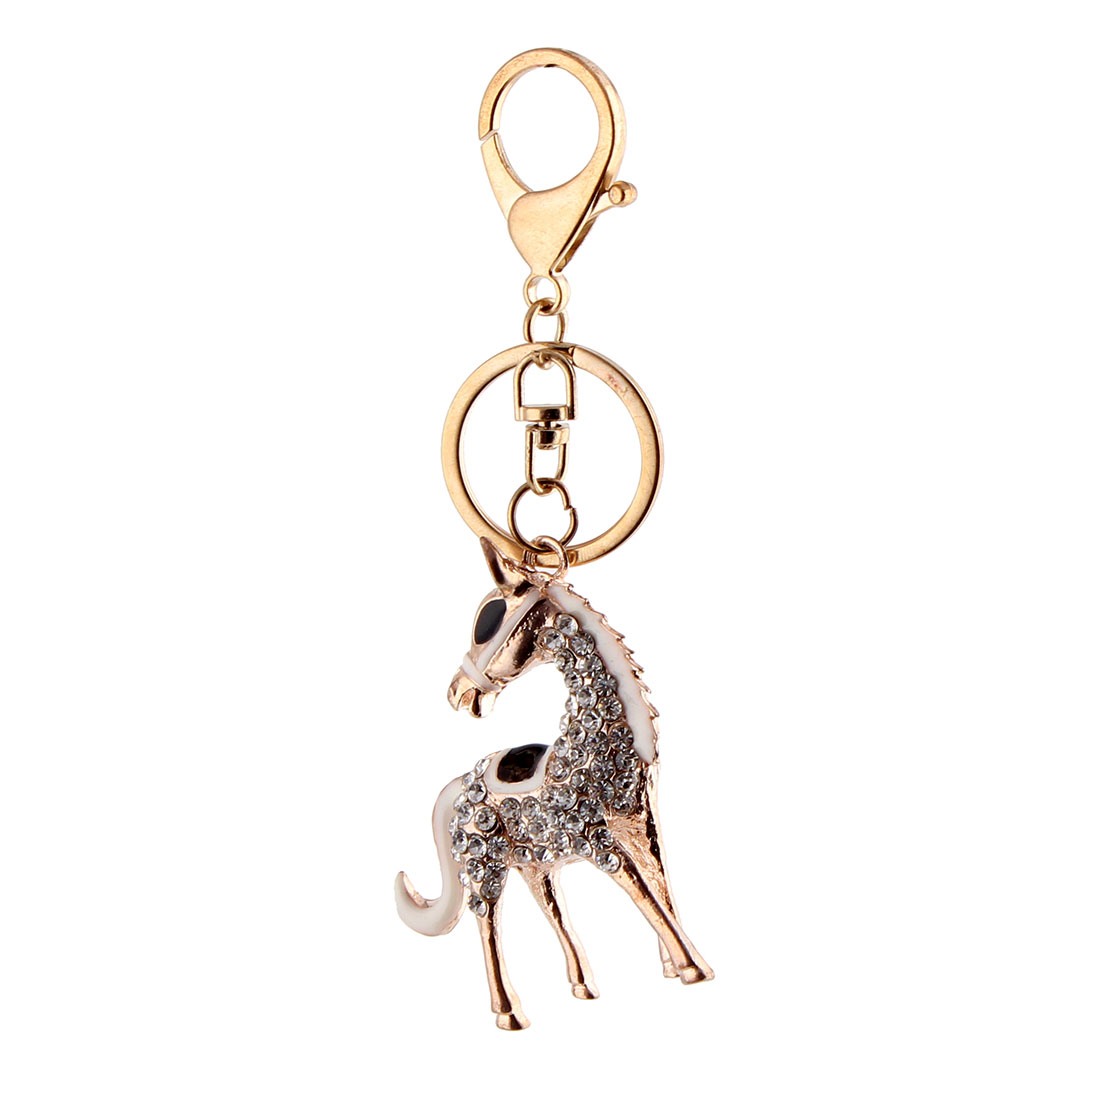 Metal Ring Faux Rhinestone Horse Shape Bag Decor Hanging Key Chain Gold Tone